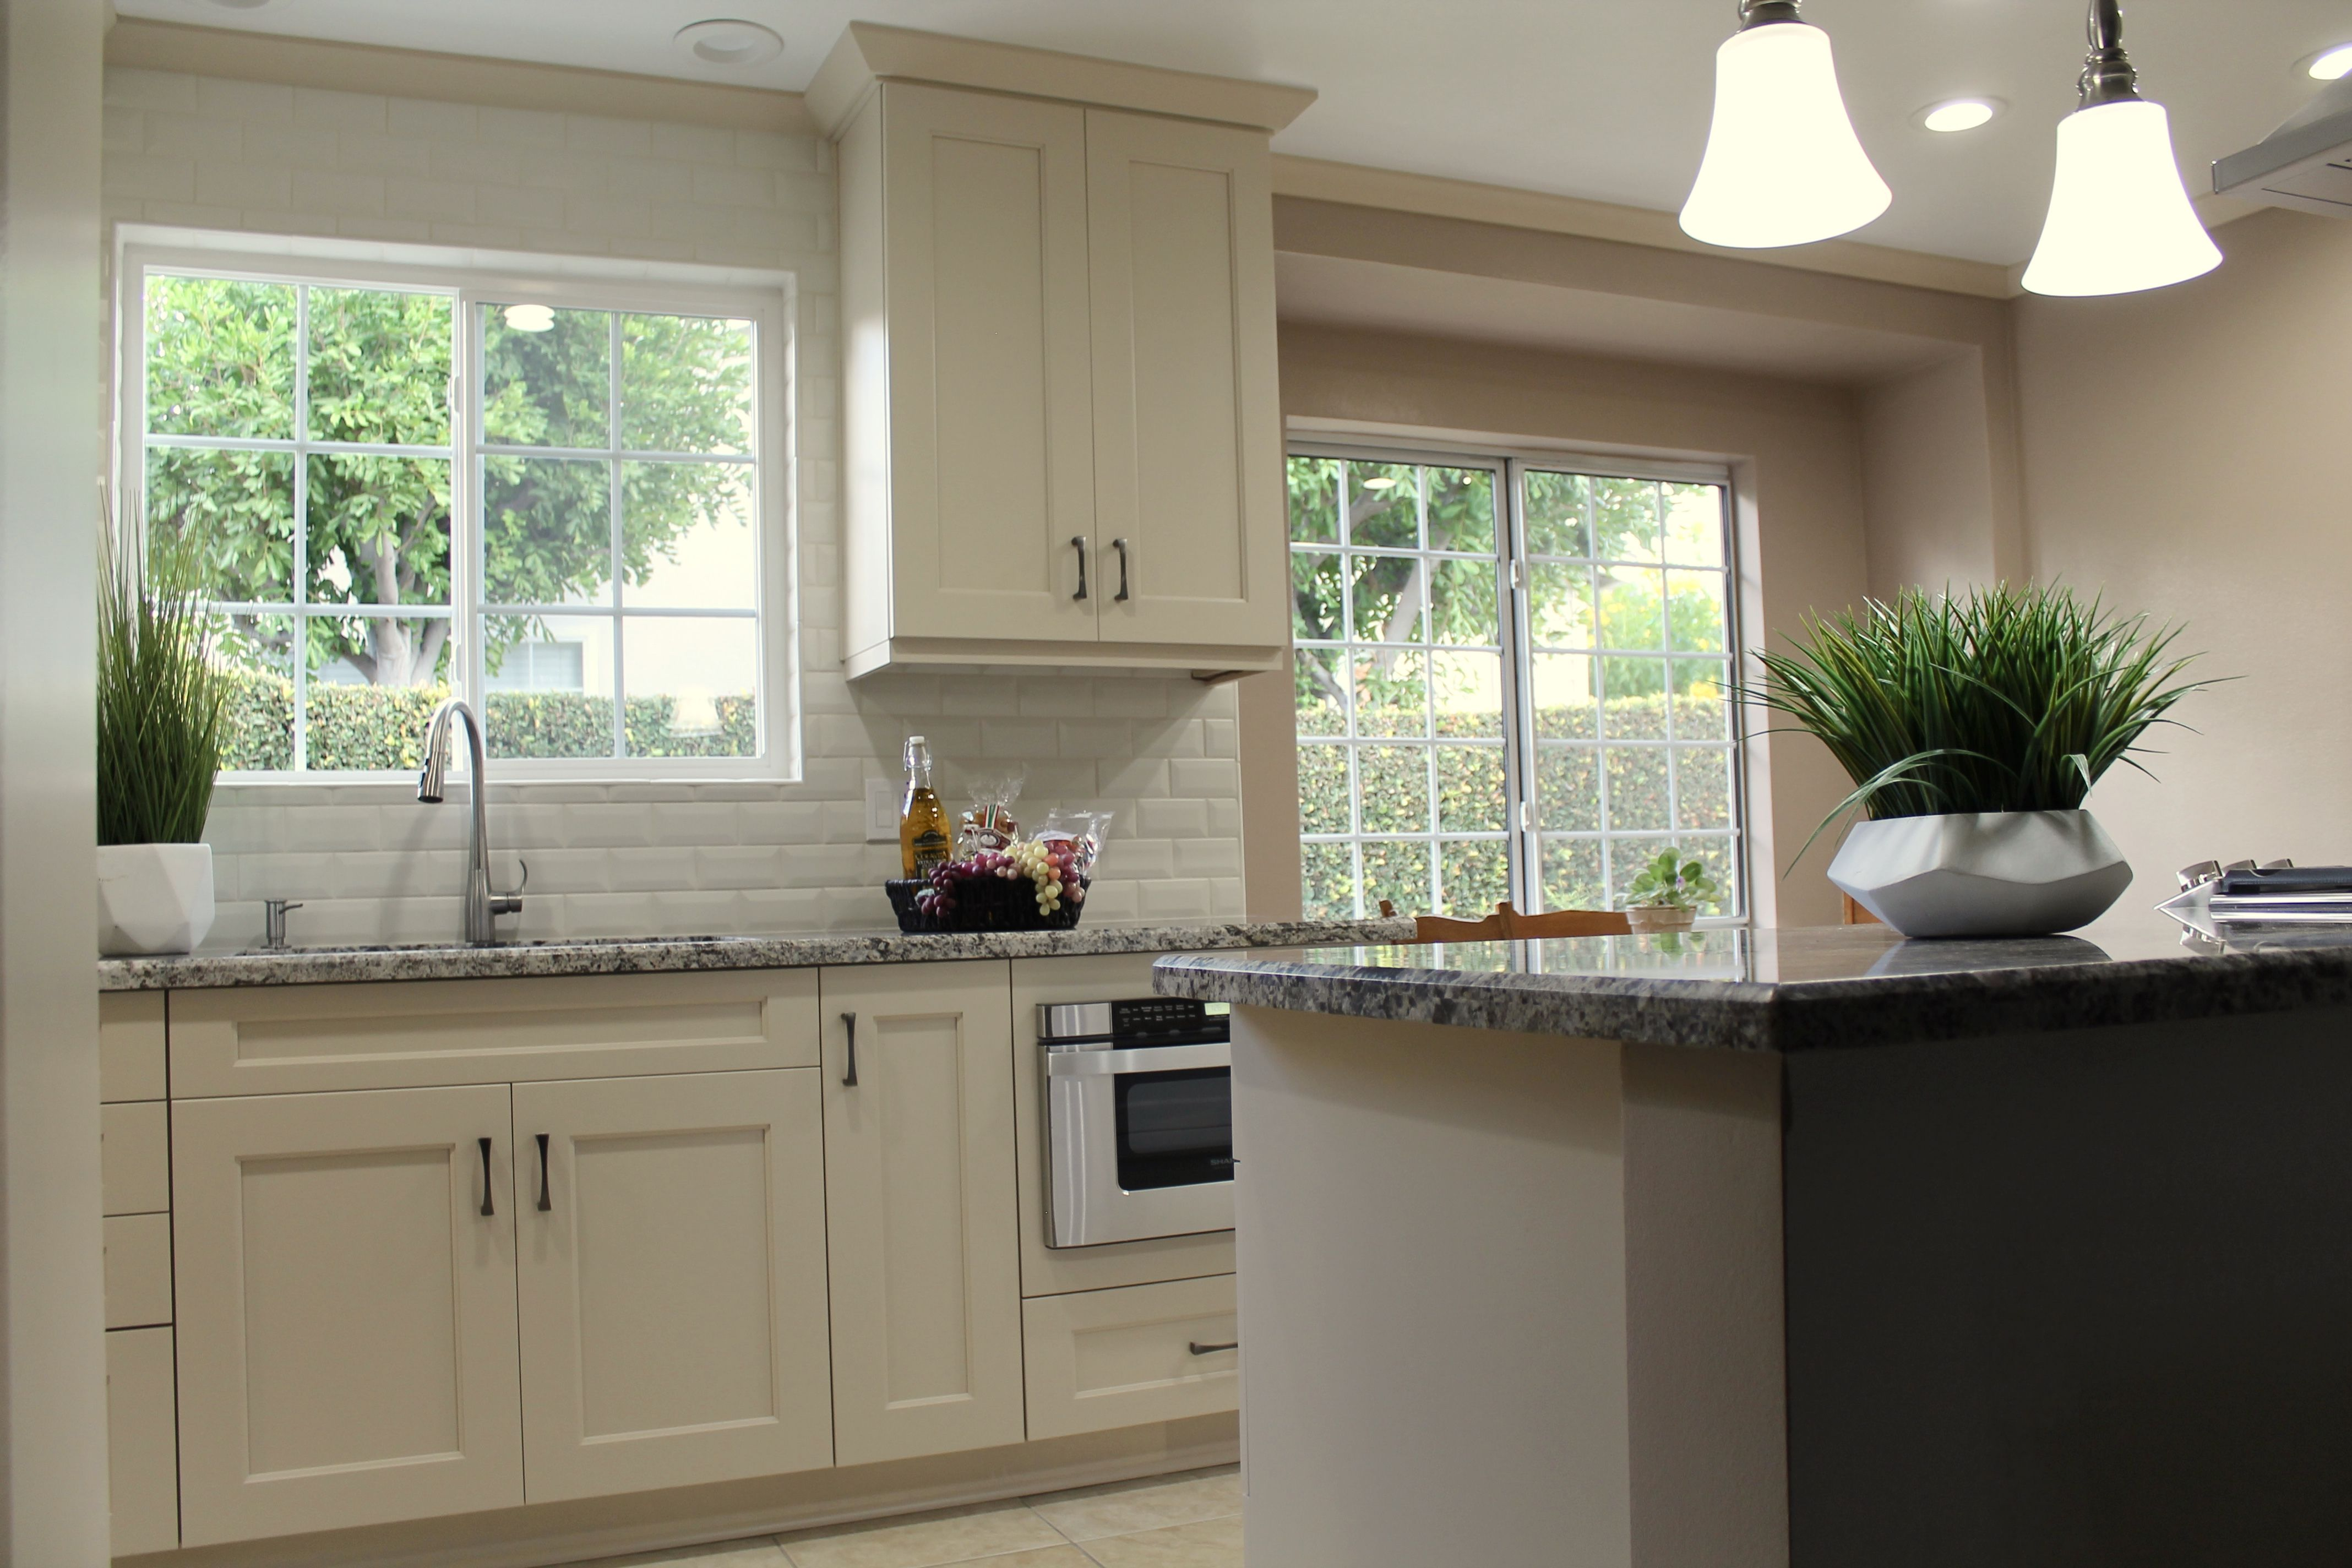 The Opaque Varnish Crema Cabinets On This Simple Door Style Really Allow For The Intricate Granite To Stand Out With Kitchen Refacing Kitchen Cabinetry Cabinet